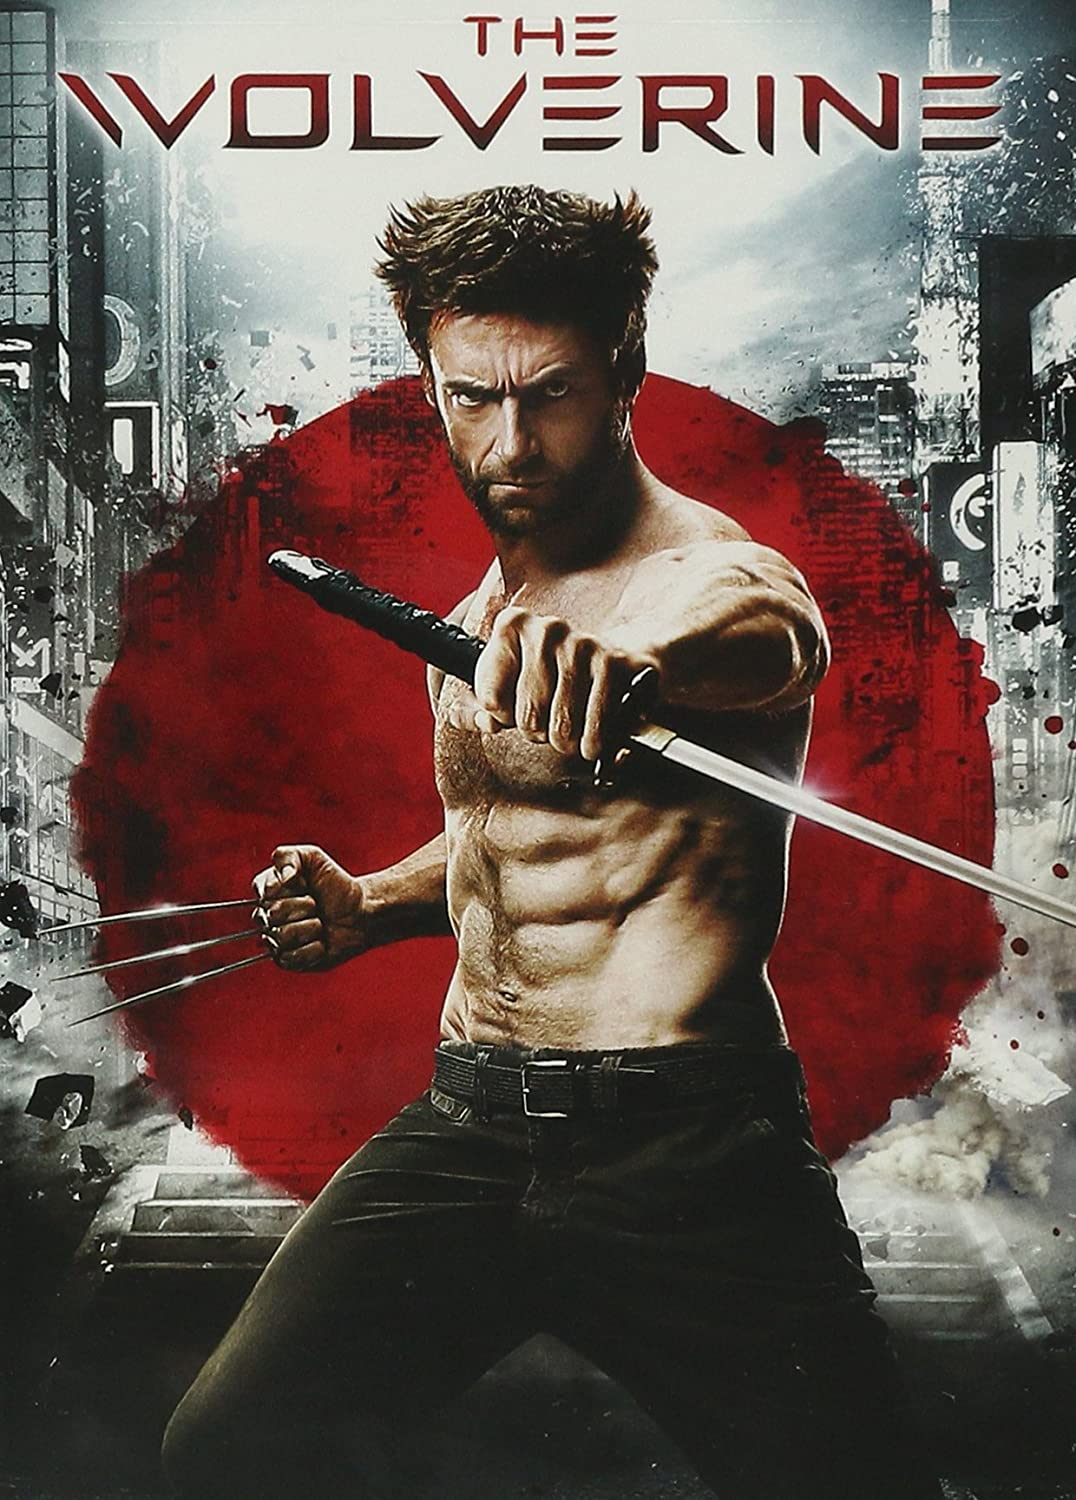 Amazon.com: The Wolverine: Hugh Jackman, Will Yun Lee, James Mangold: Movies  & TV